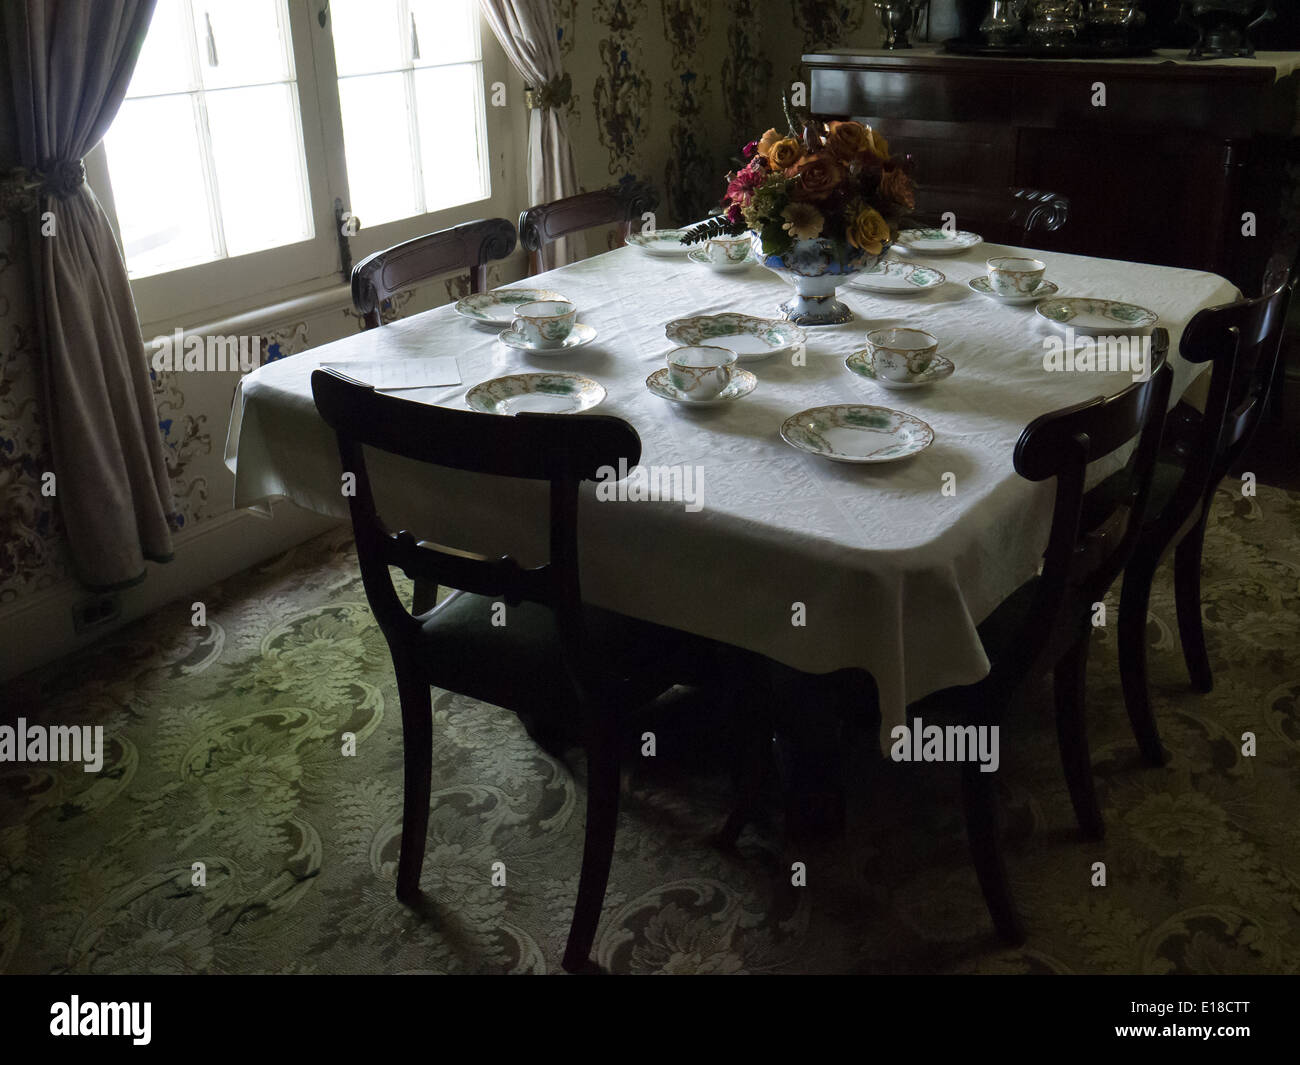 vintage dining table at colborne lodge - Stock Image